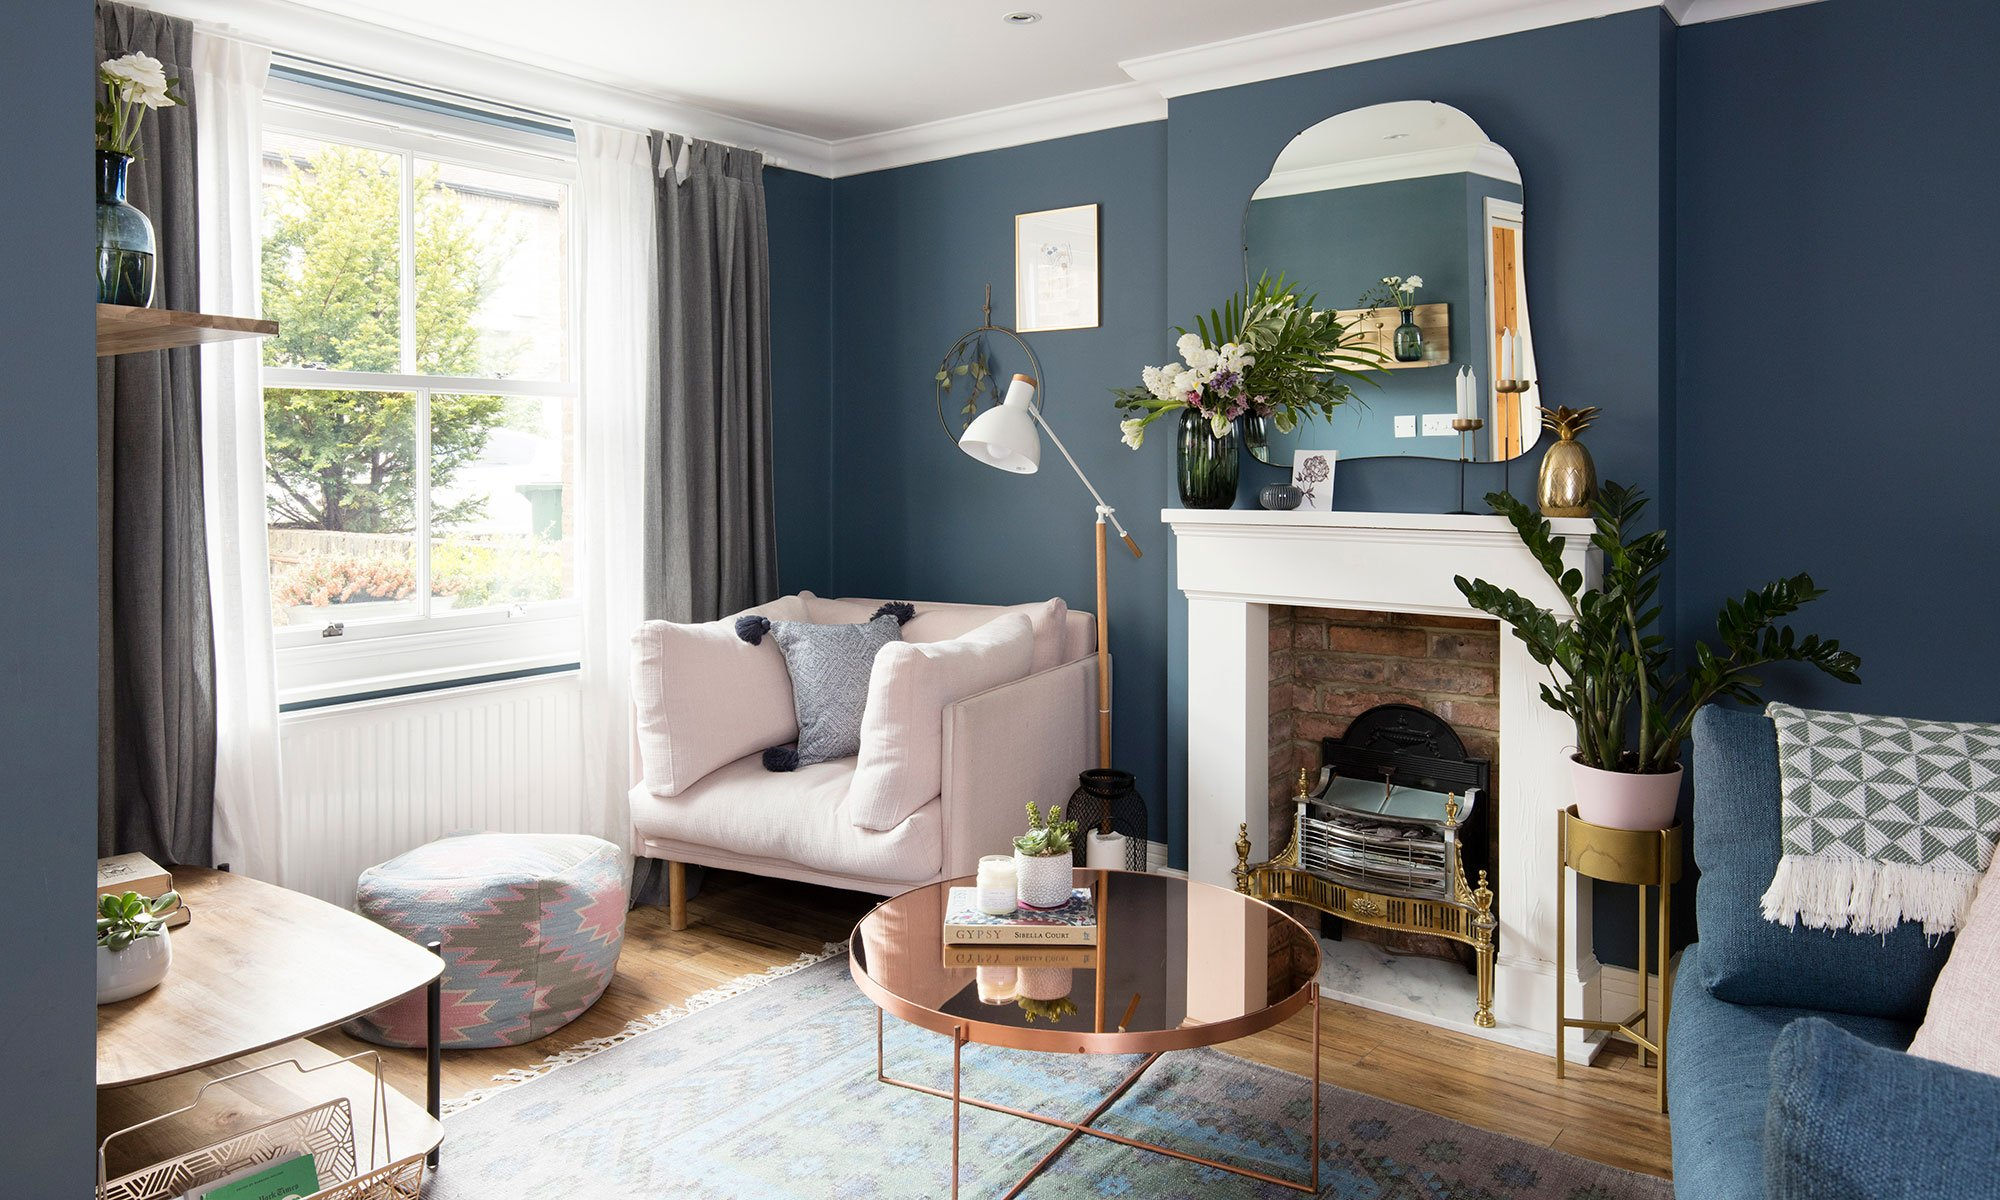 Tour this sophisticated modern-meets-traditional Victorian terrace in London